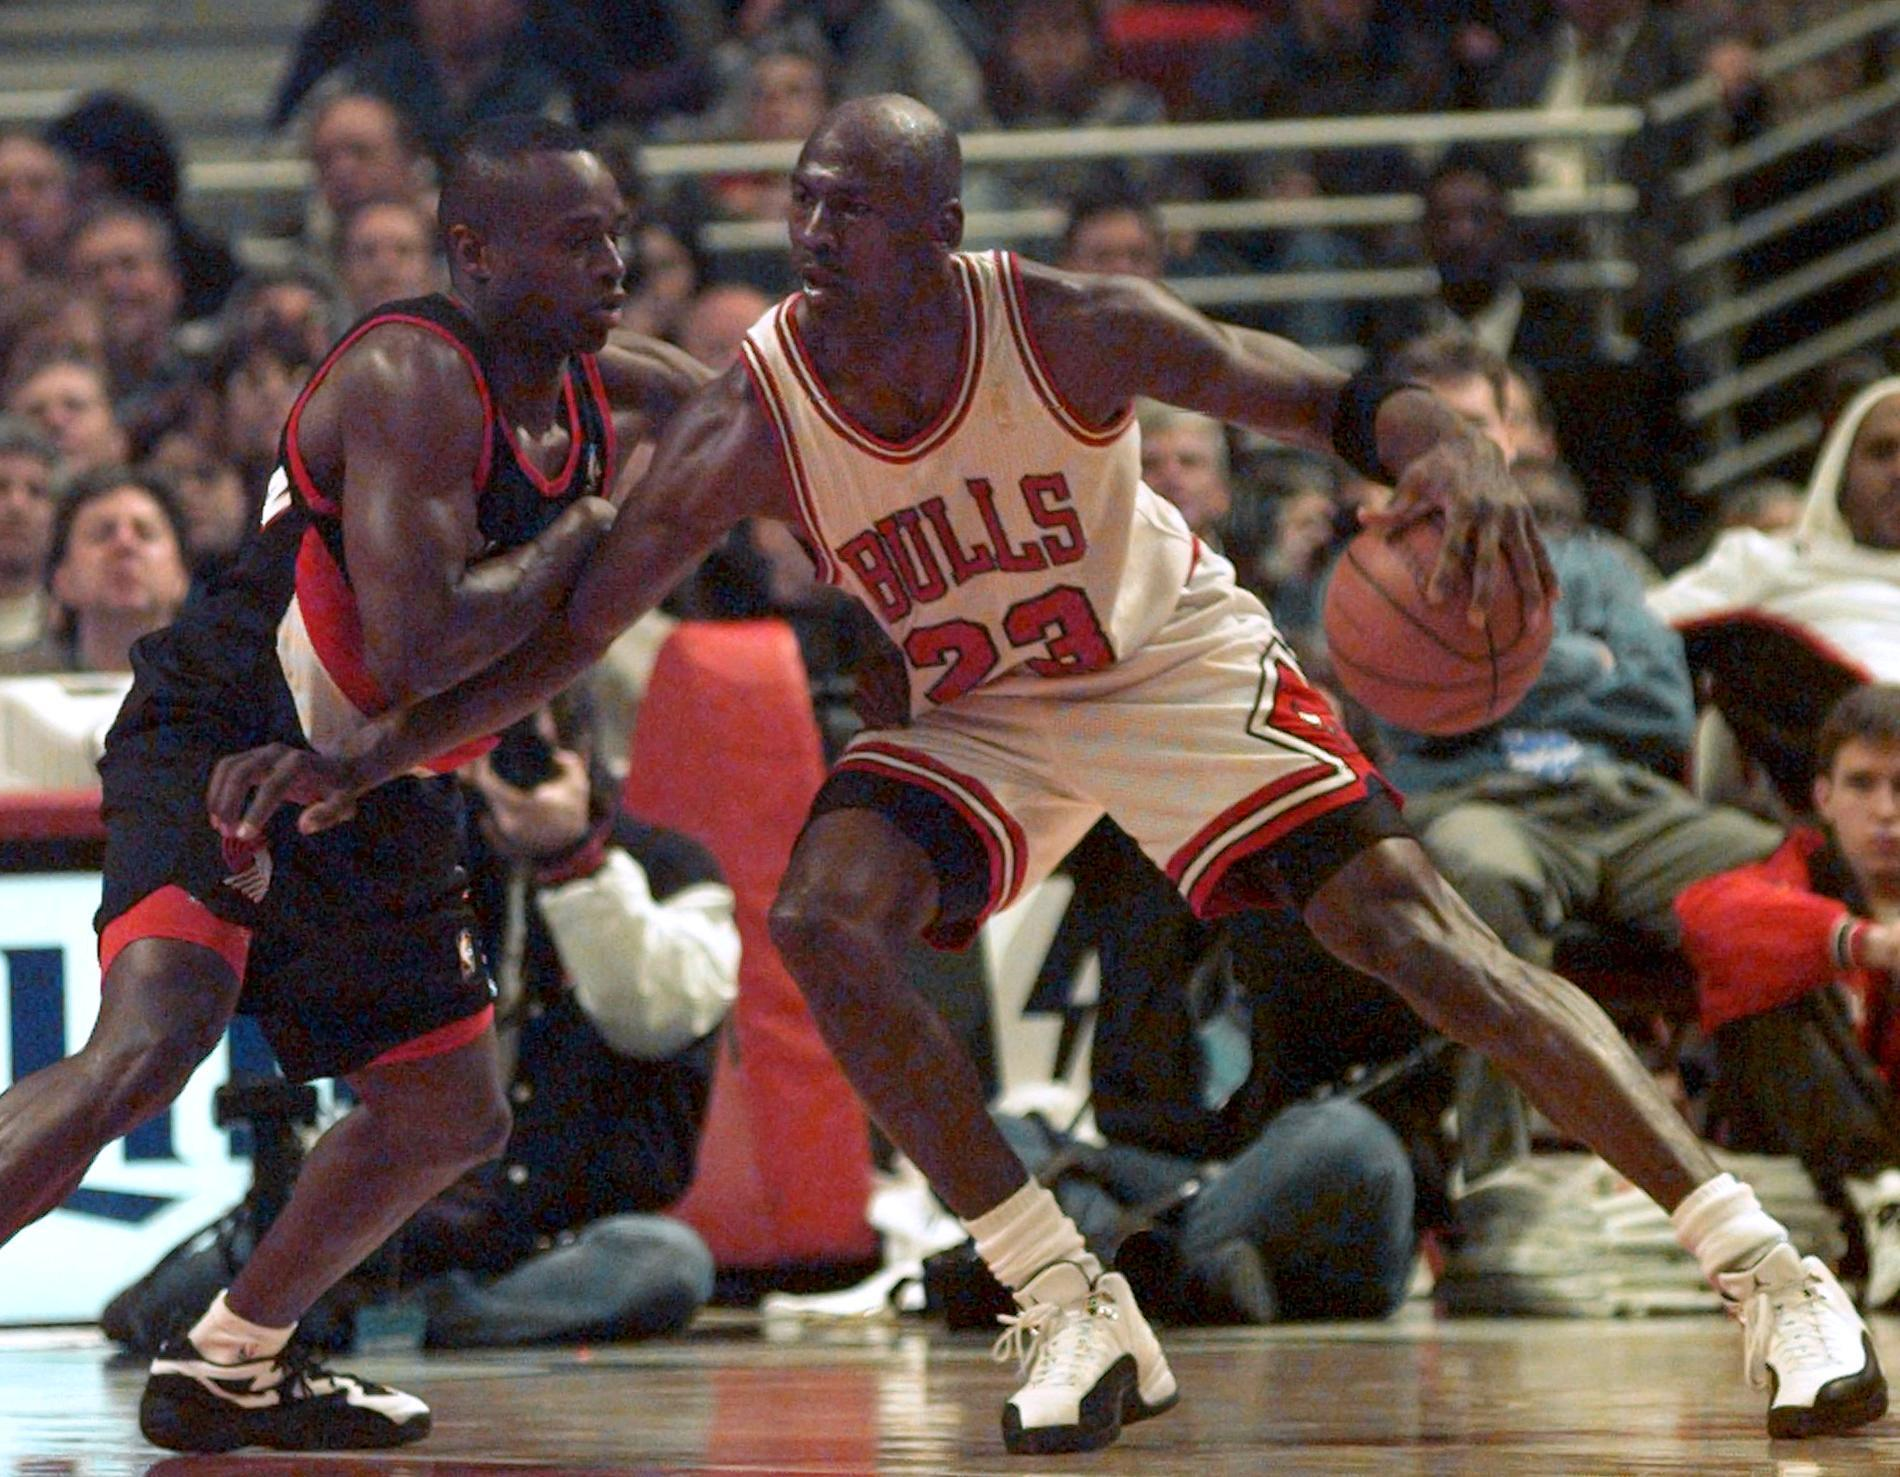 Chicago Bulls' Michael Jordan (23) slams the ball through the hoop over Miami Heat's Keith Askins (2) during first quarter action in Miami Friday Feb. 23, 1996. (AP Photo/Hans Deryk)